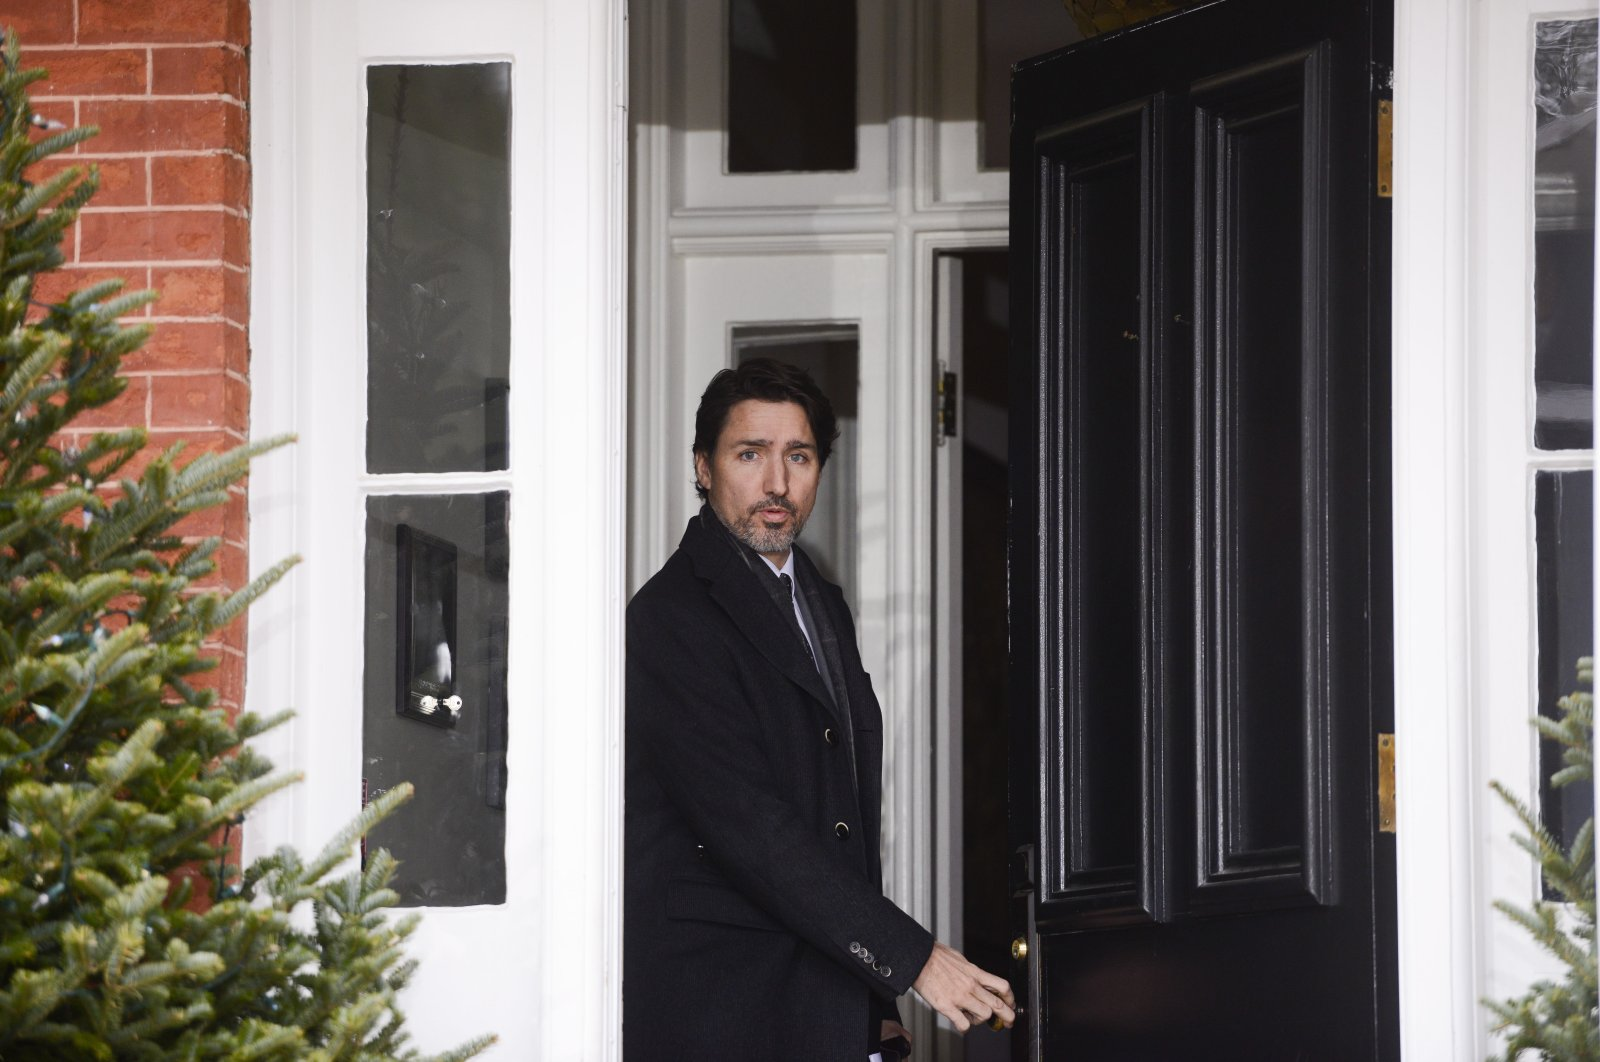 Canada Prime Minister Justin Trudeau arrives to address Canadians on the COVID-19 pandemic from Rideau Cottage in Ottawa, Ontario, Friday, April 3, 2020. (AP Photo)